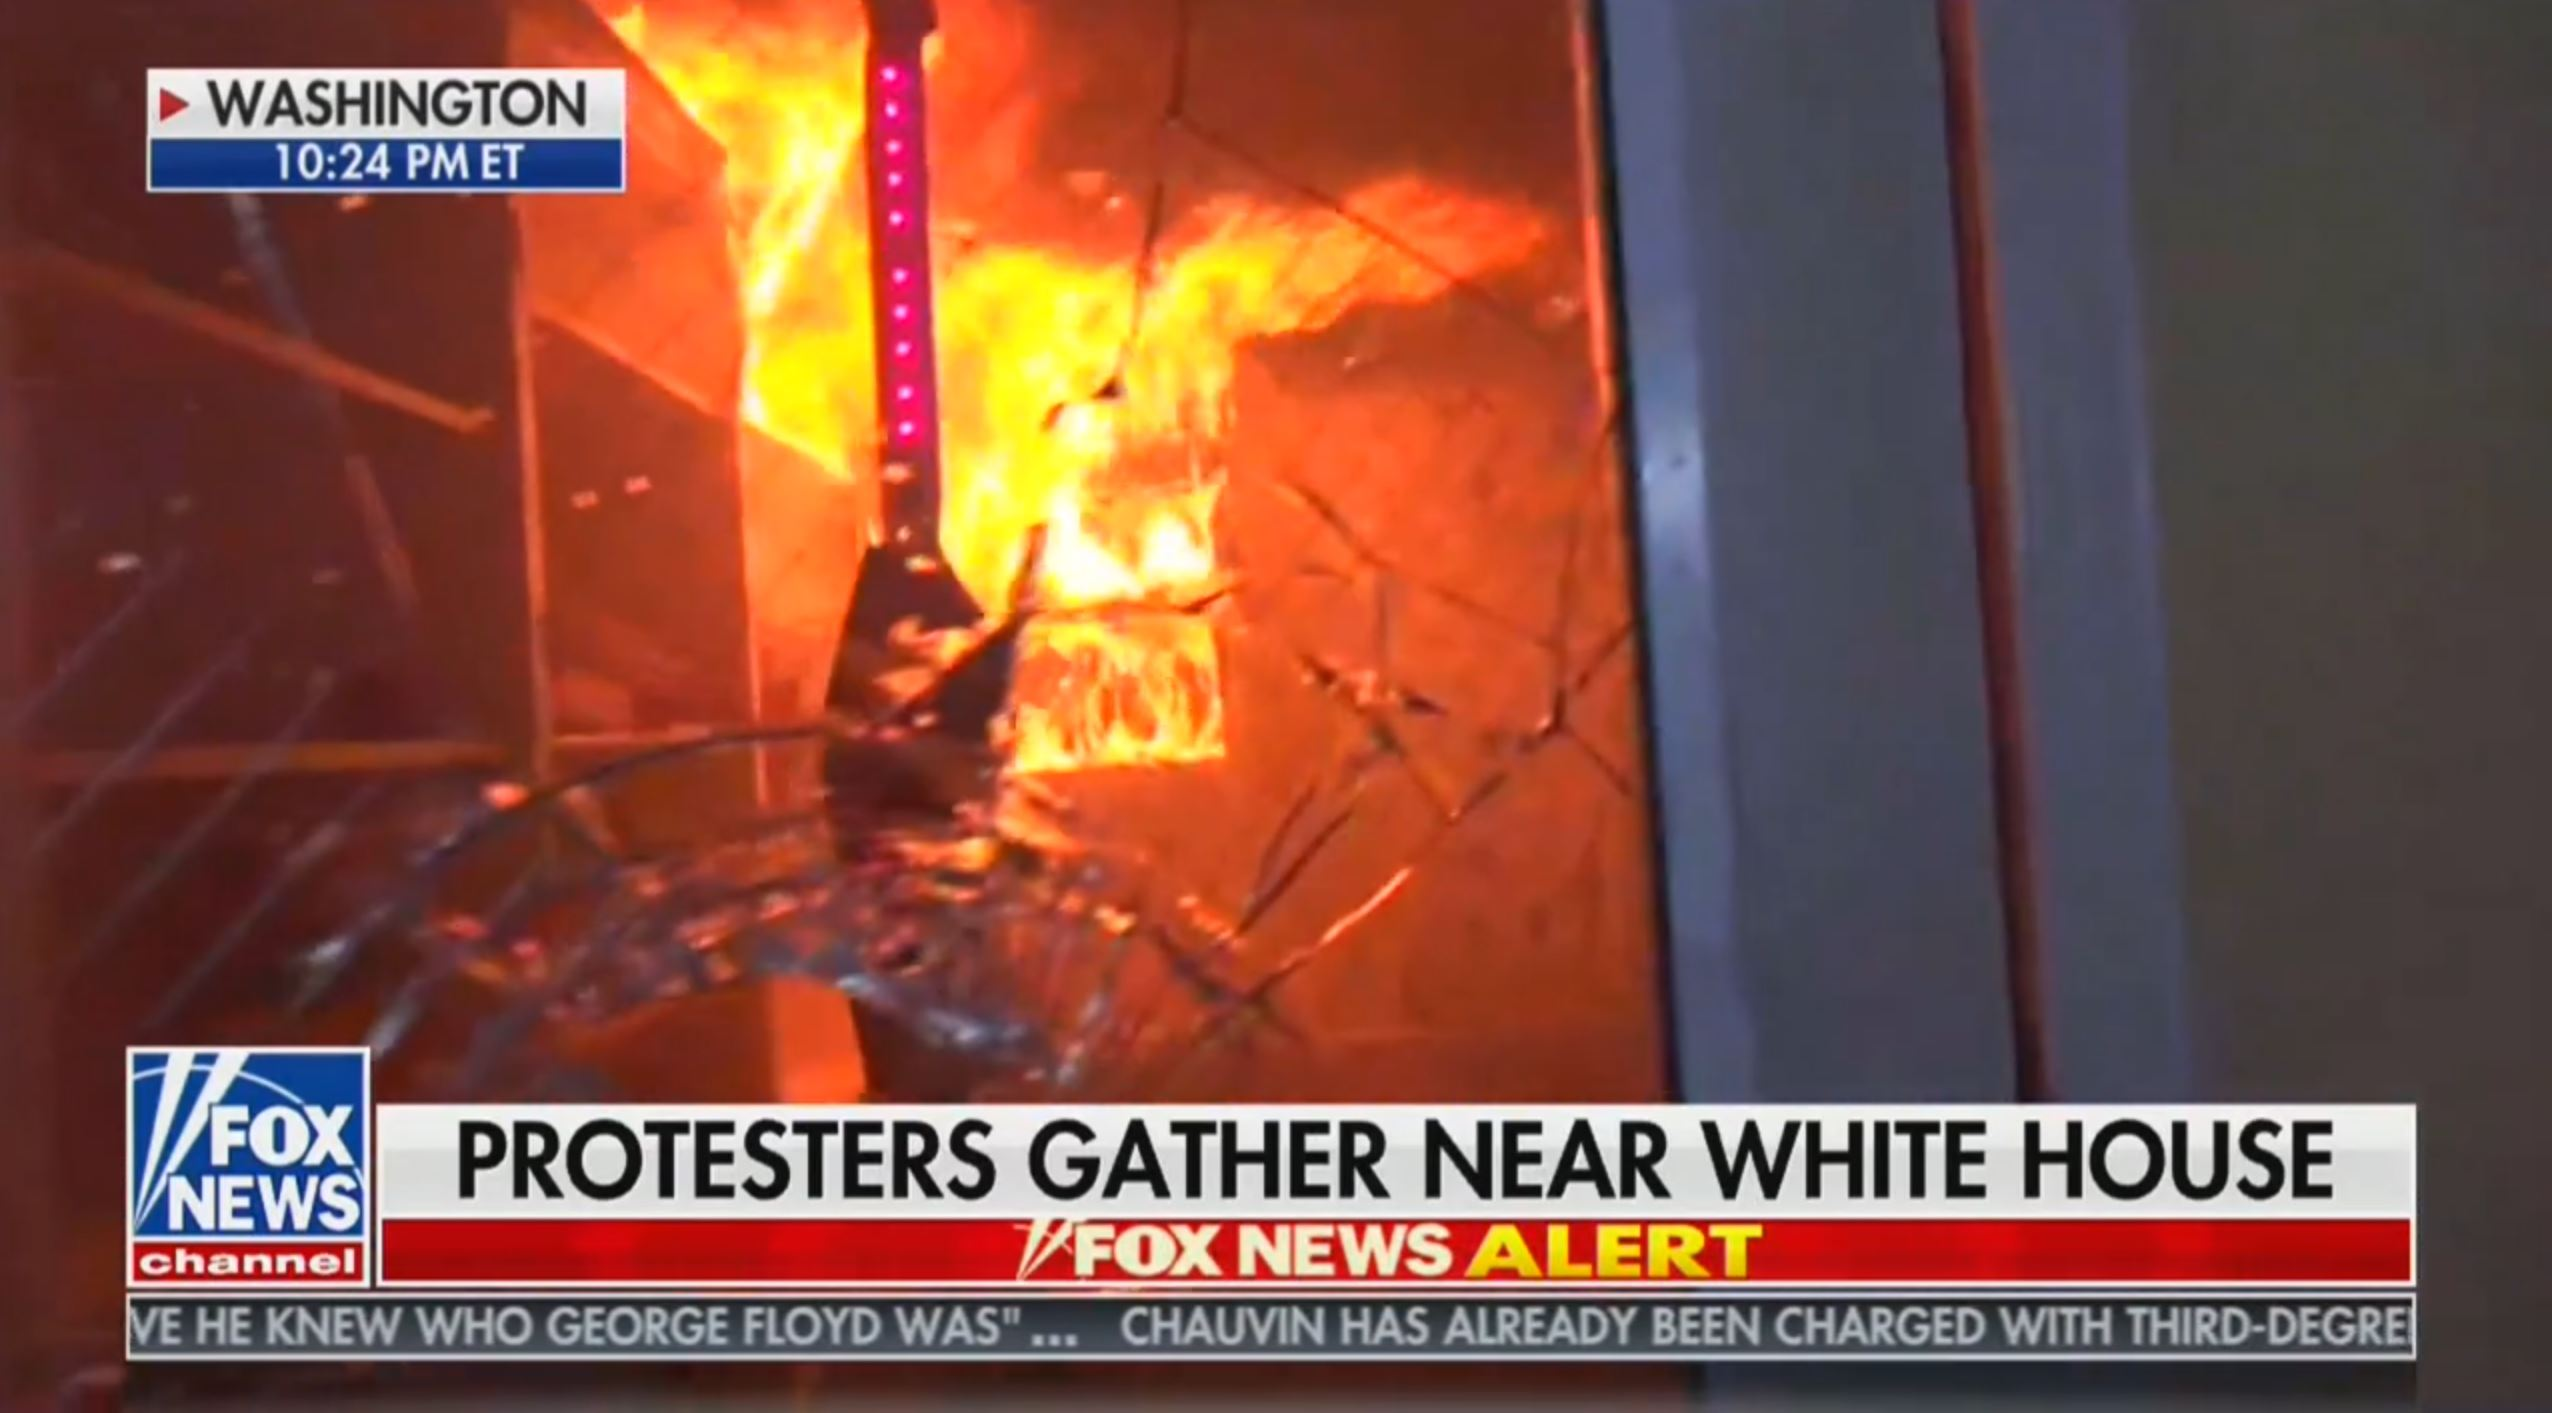 Incendiary Fox News headline, meant to have viewers associate violent acts with peaceful protesters.